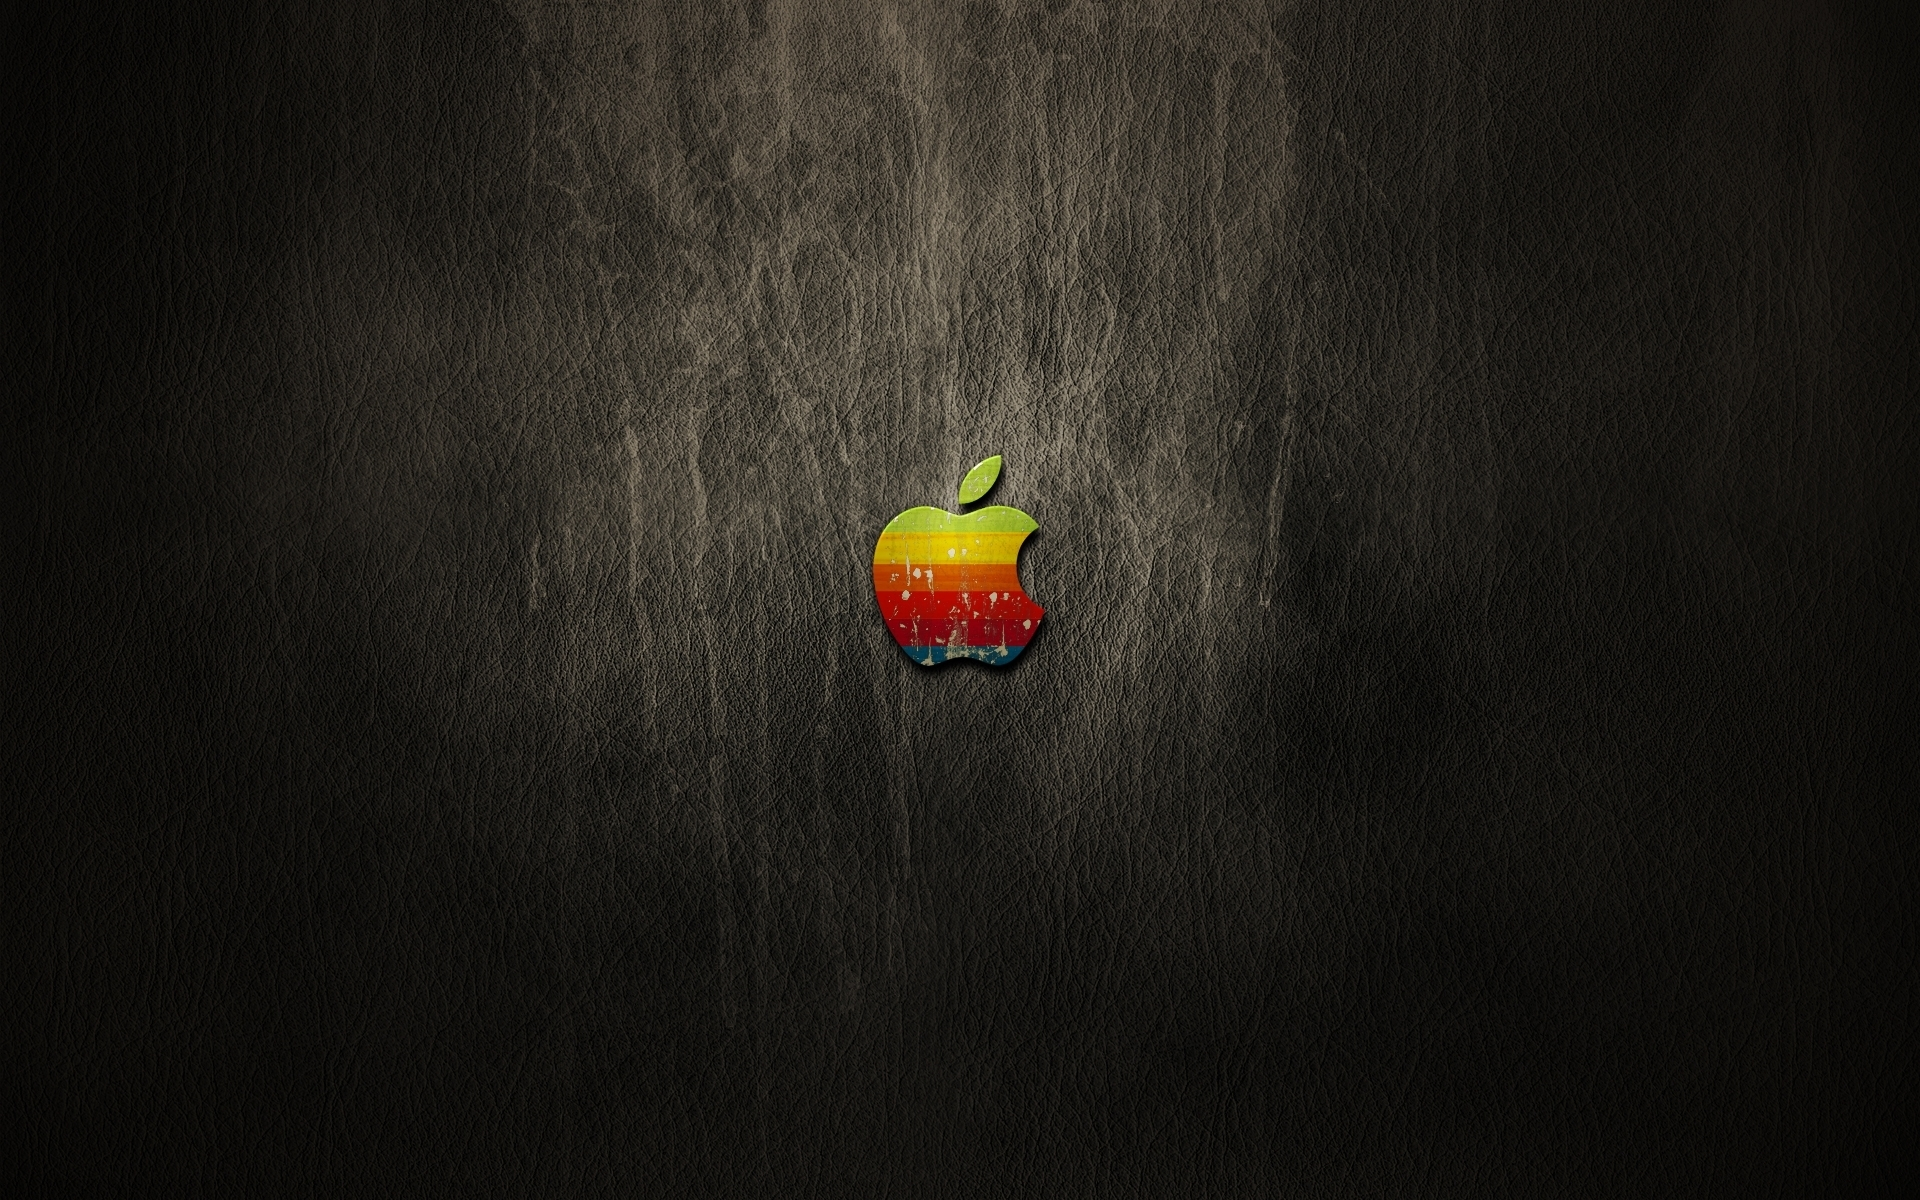 hd-leather-apple-wallpapers | wallpaper.wiki